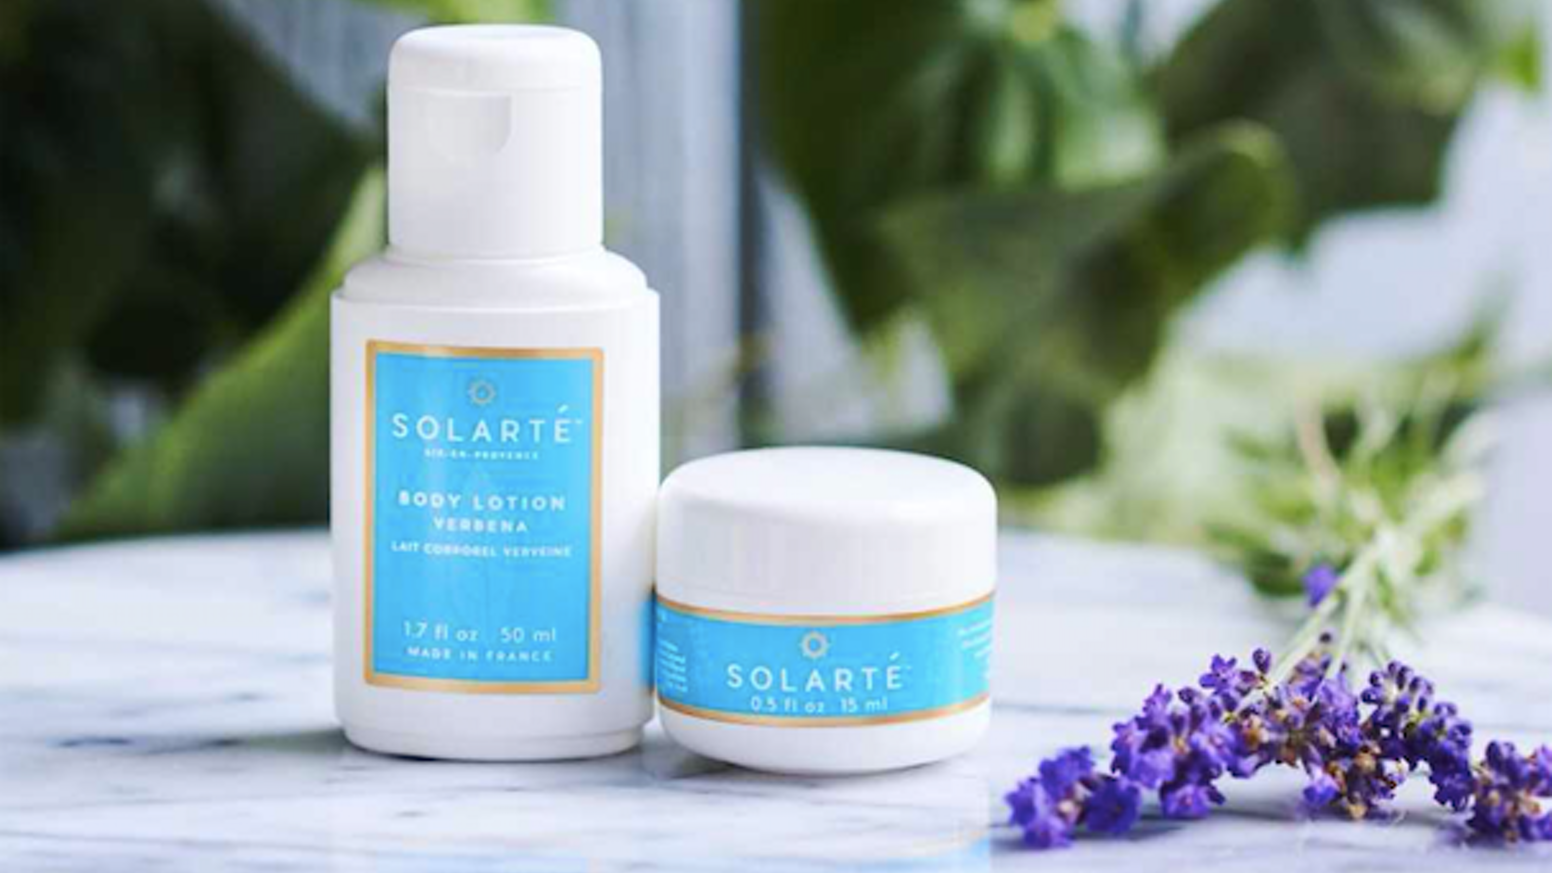 Natural skincare collection inspiring fearless lives filled with confidence, joy, & wellbeing.